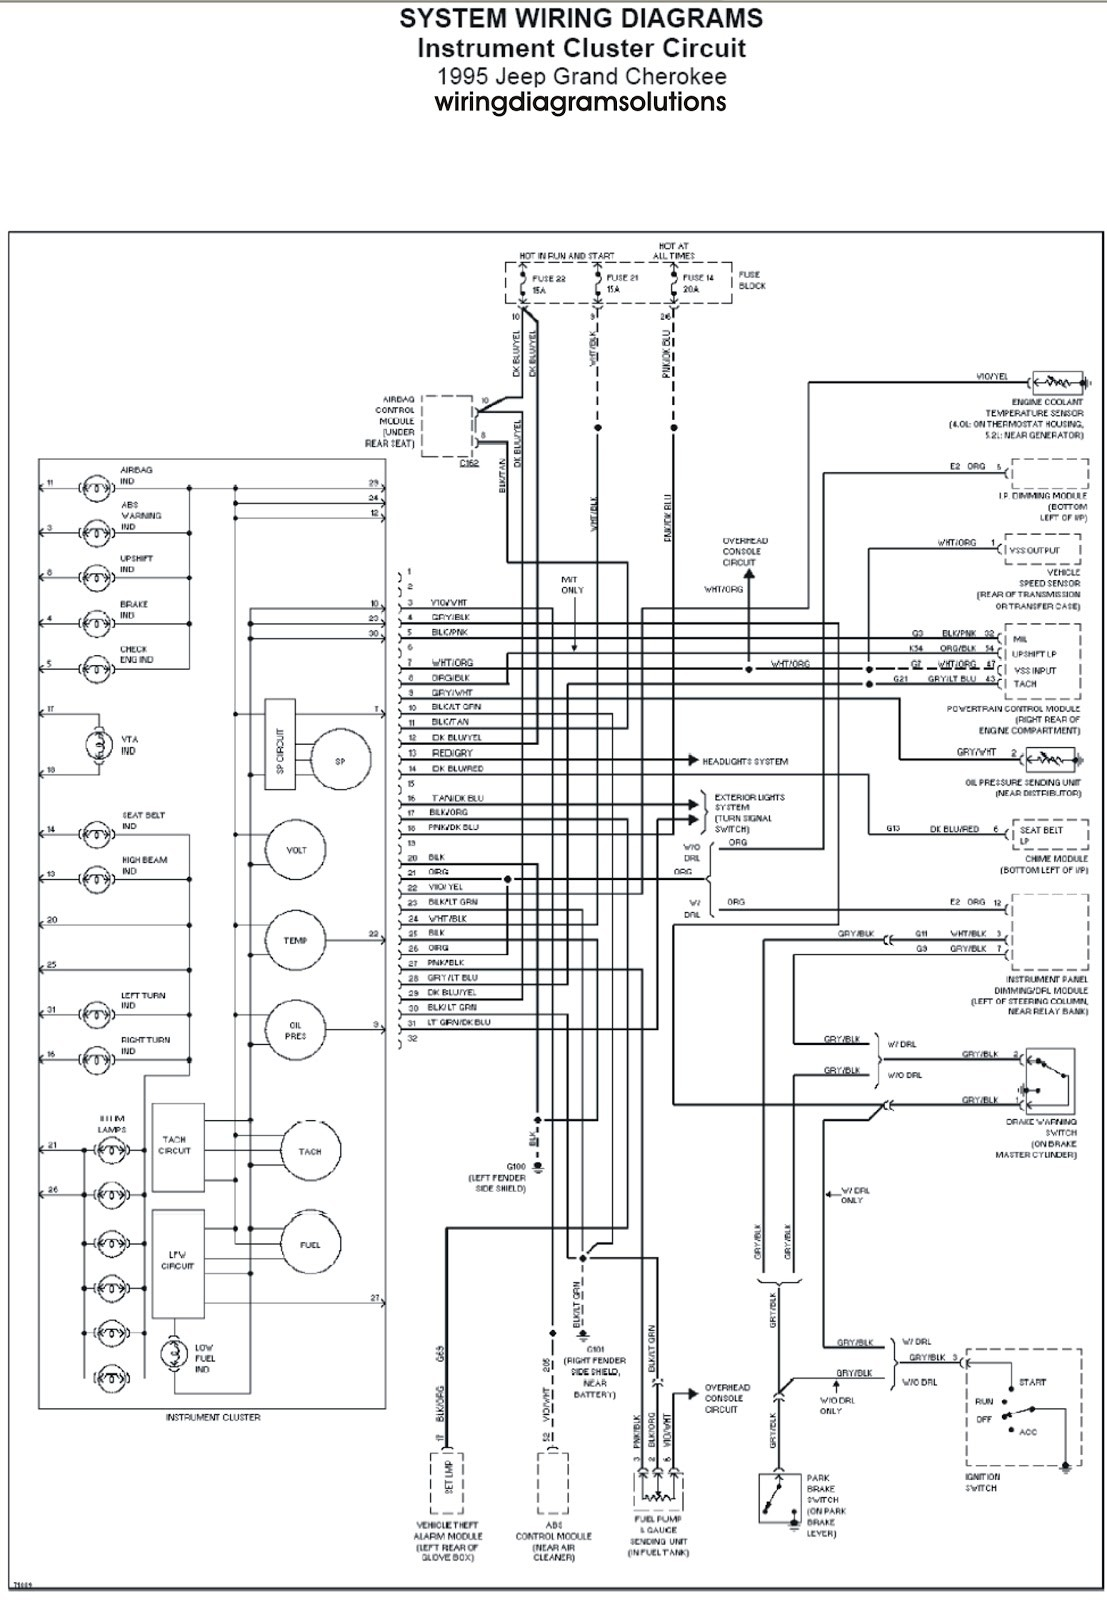 hight resolution of 1995 jeep grand cherokee stereo wiring diagram for to wiring diagram 2011 jeep grand cherokee wiring